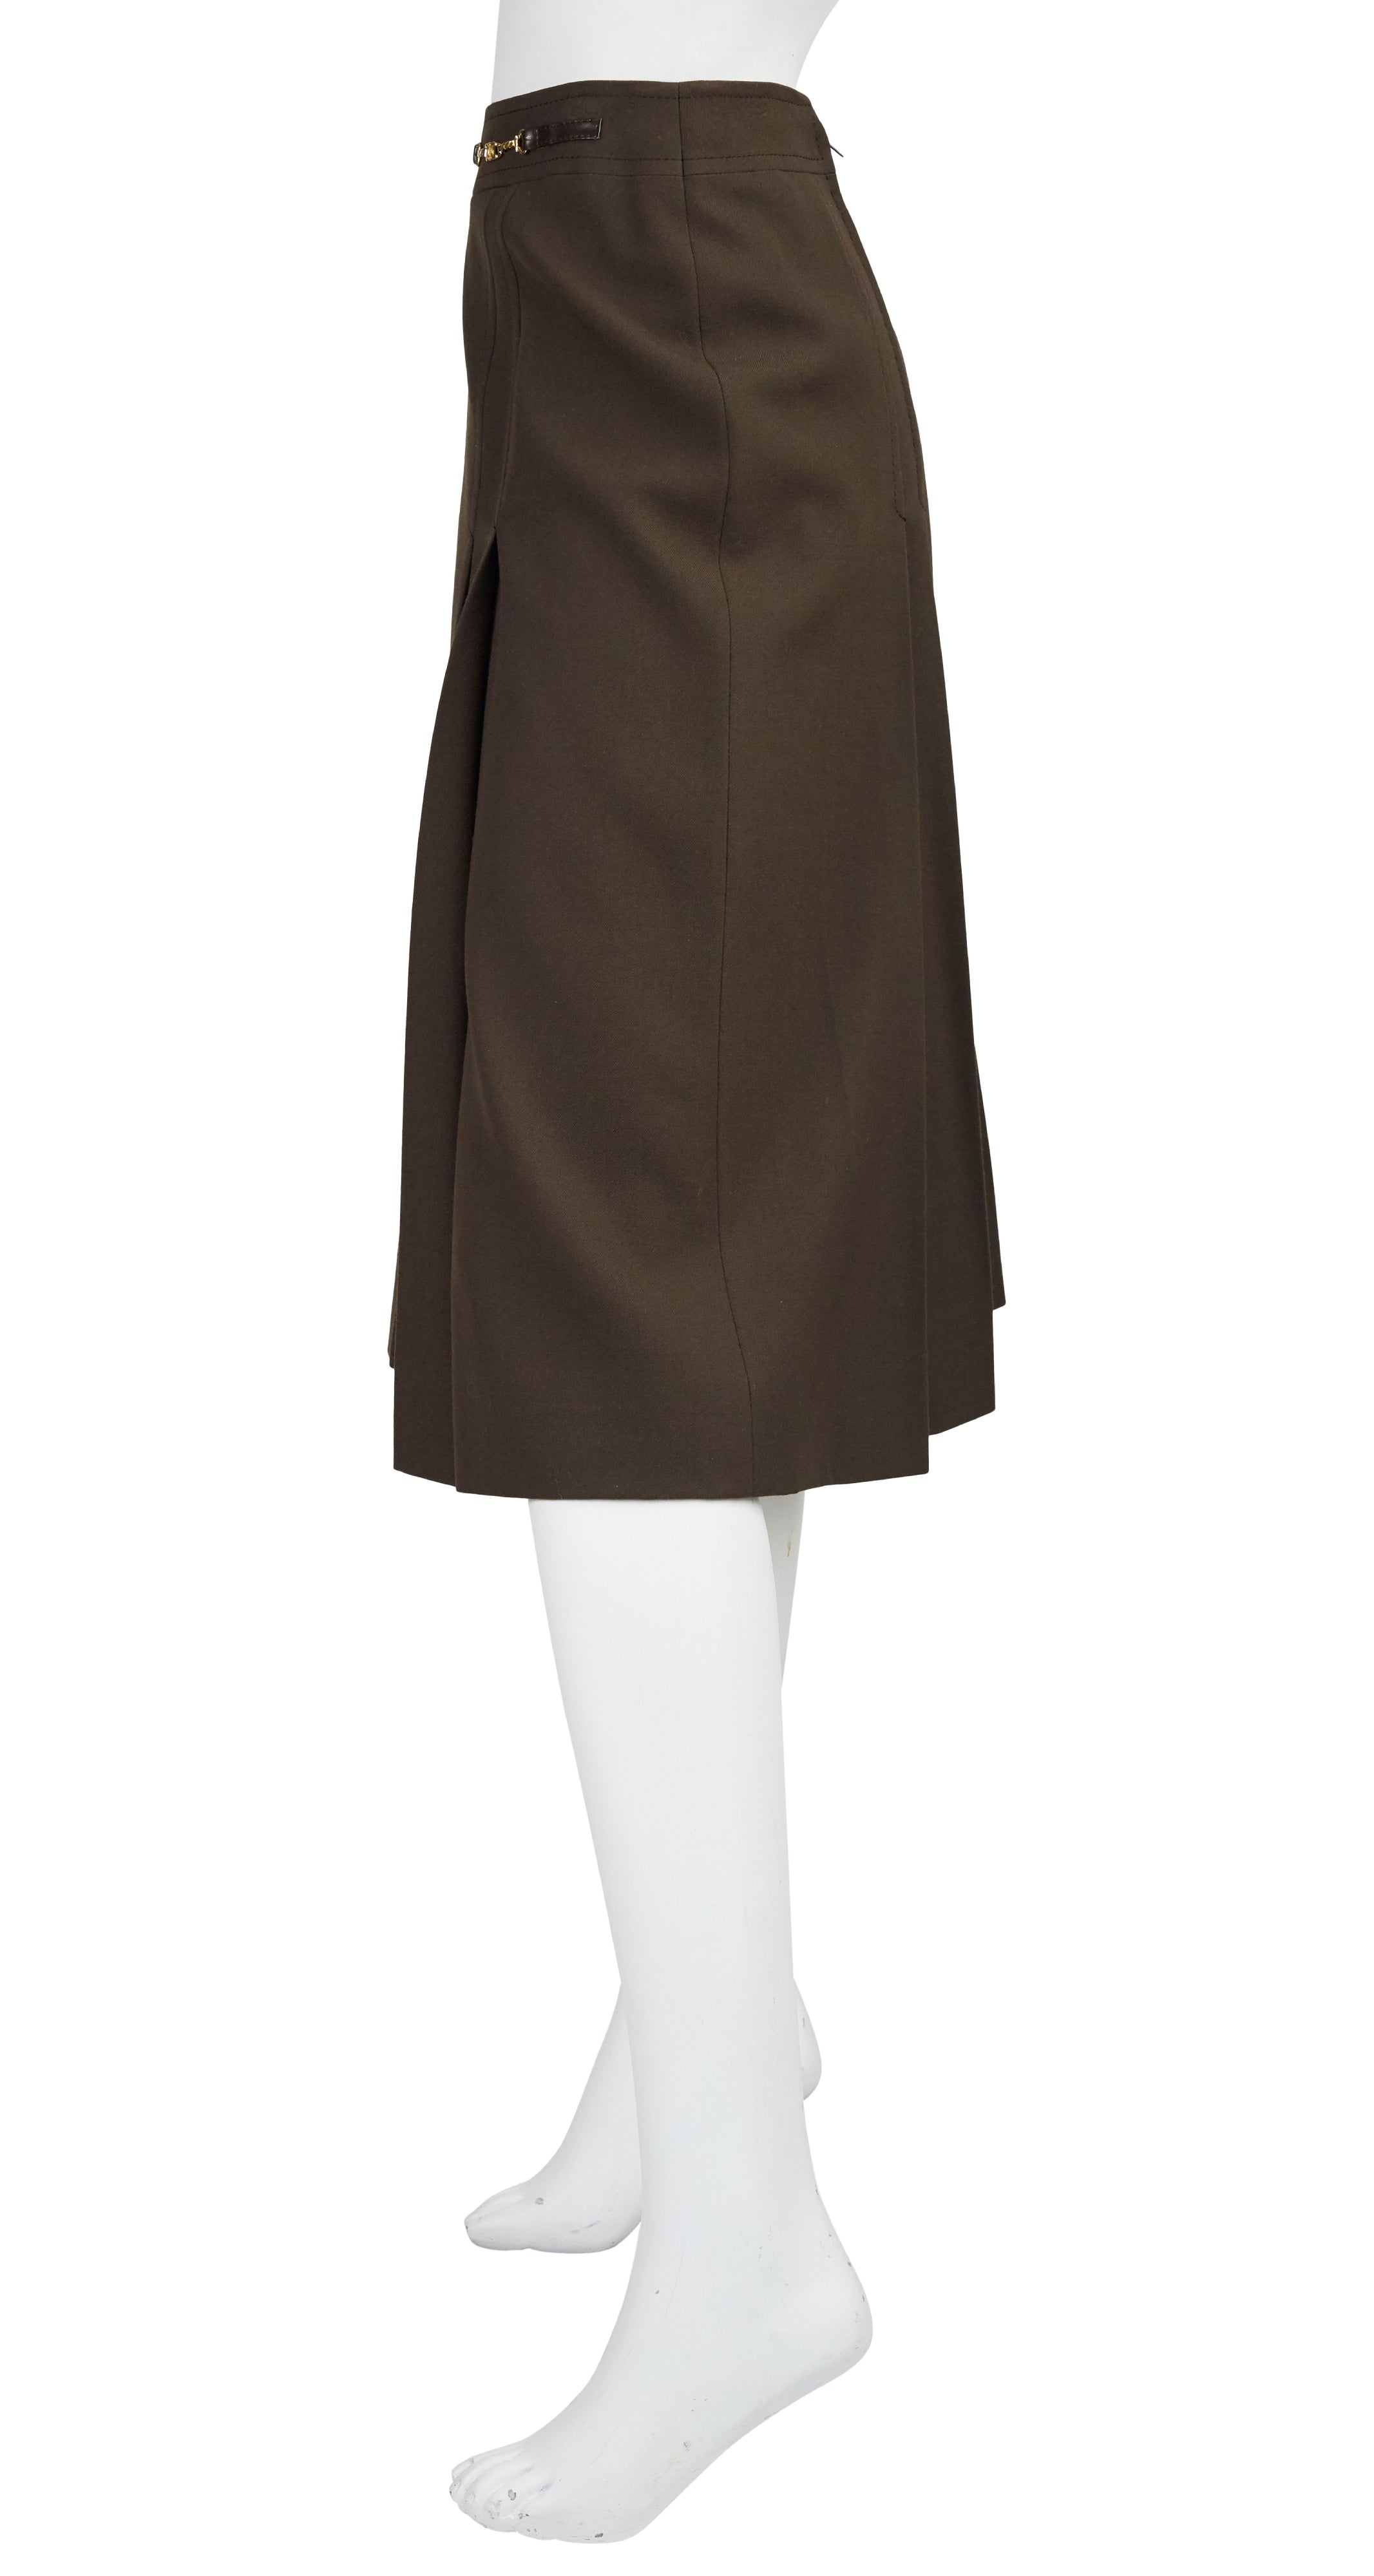 1970s Horsebit Brown Wool Pleated Skirt